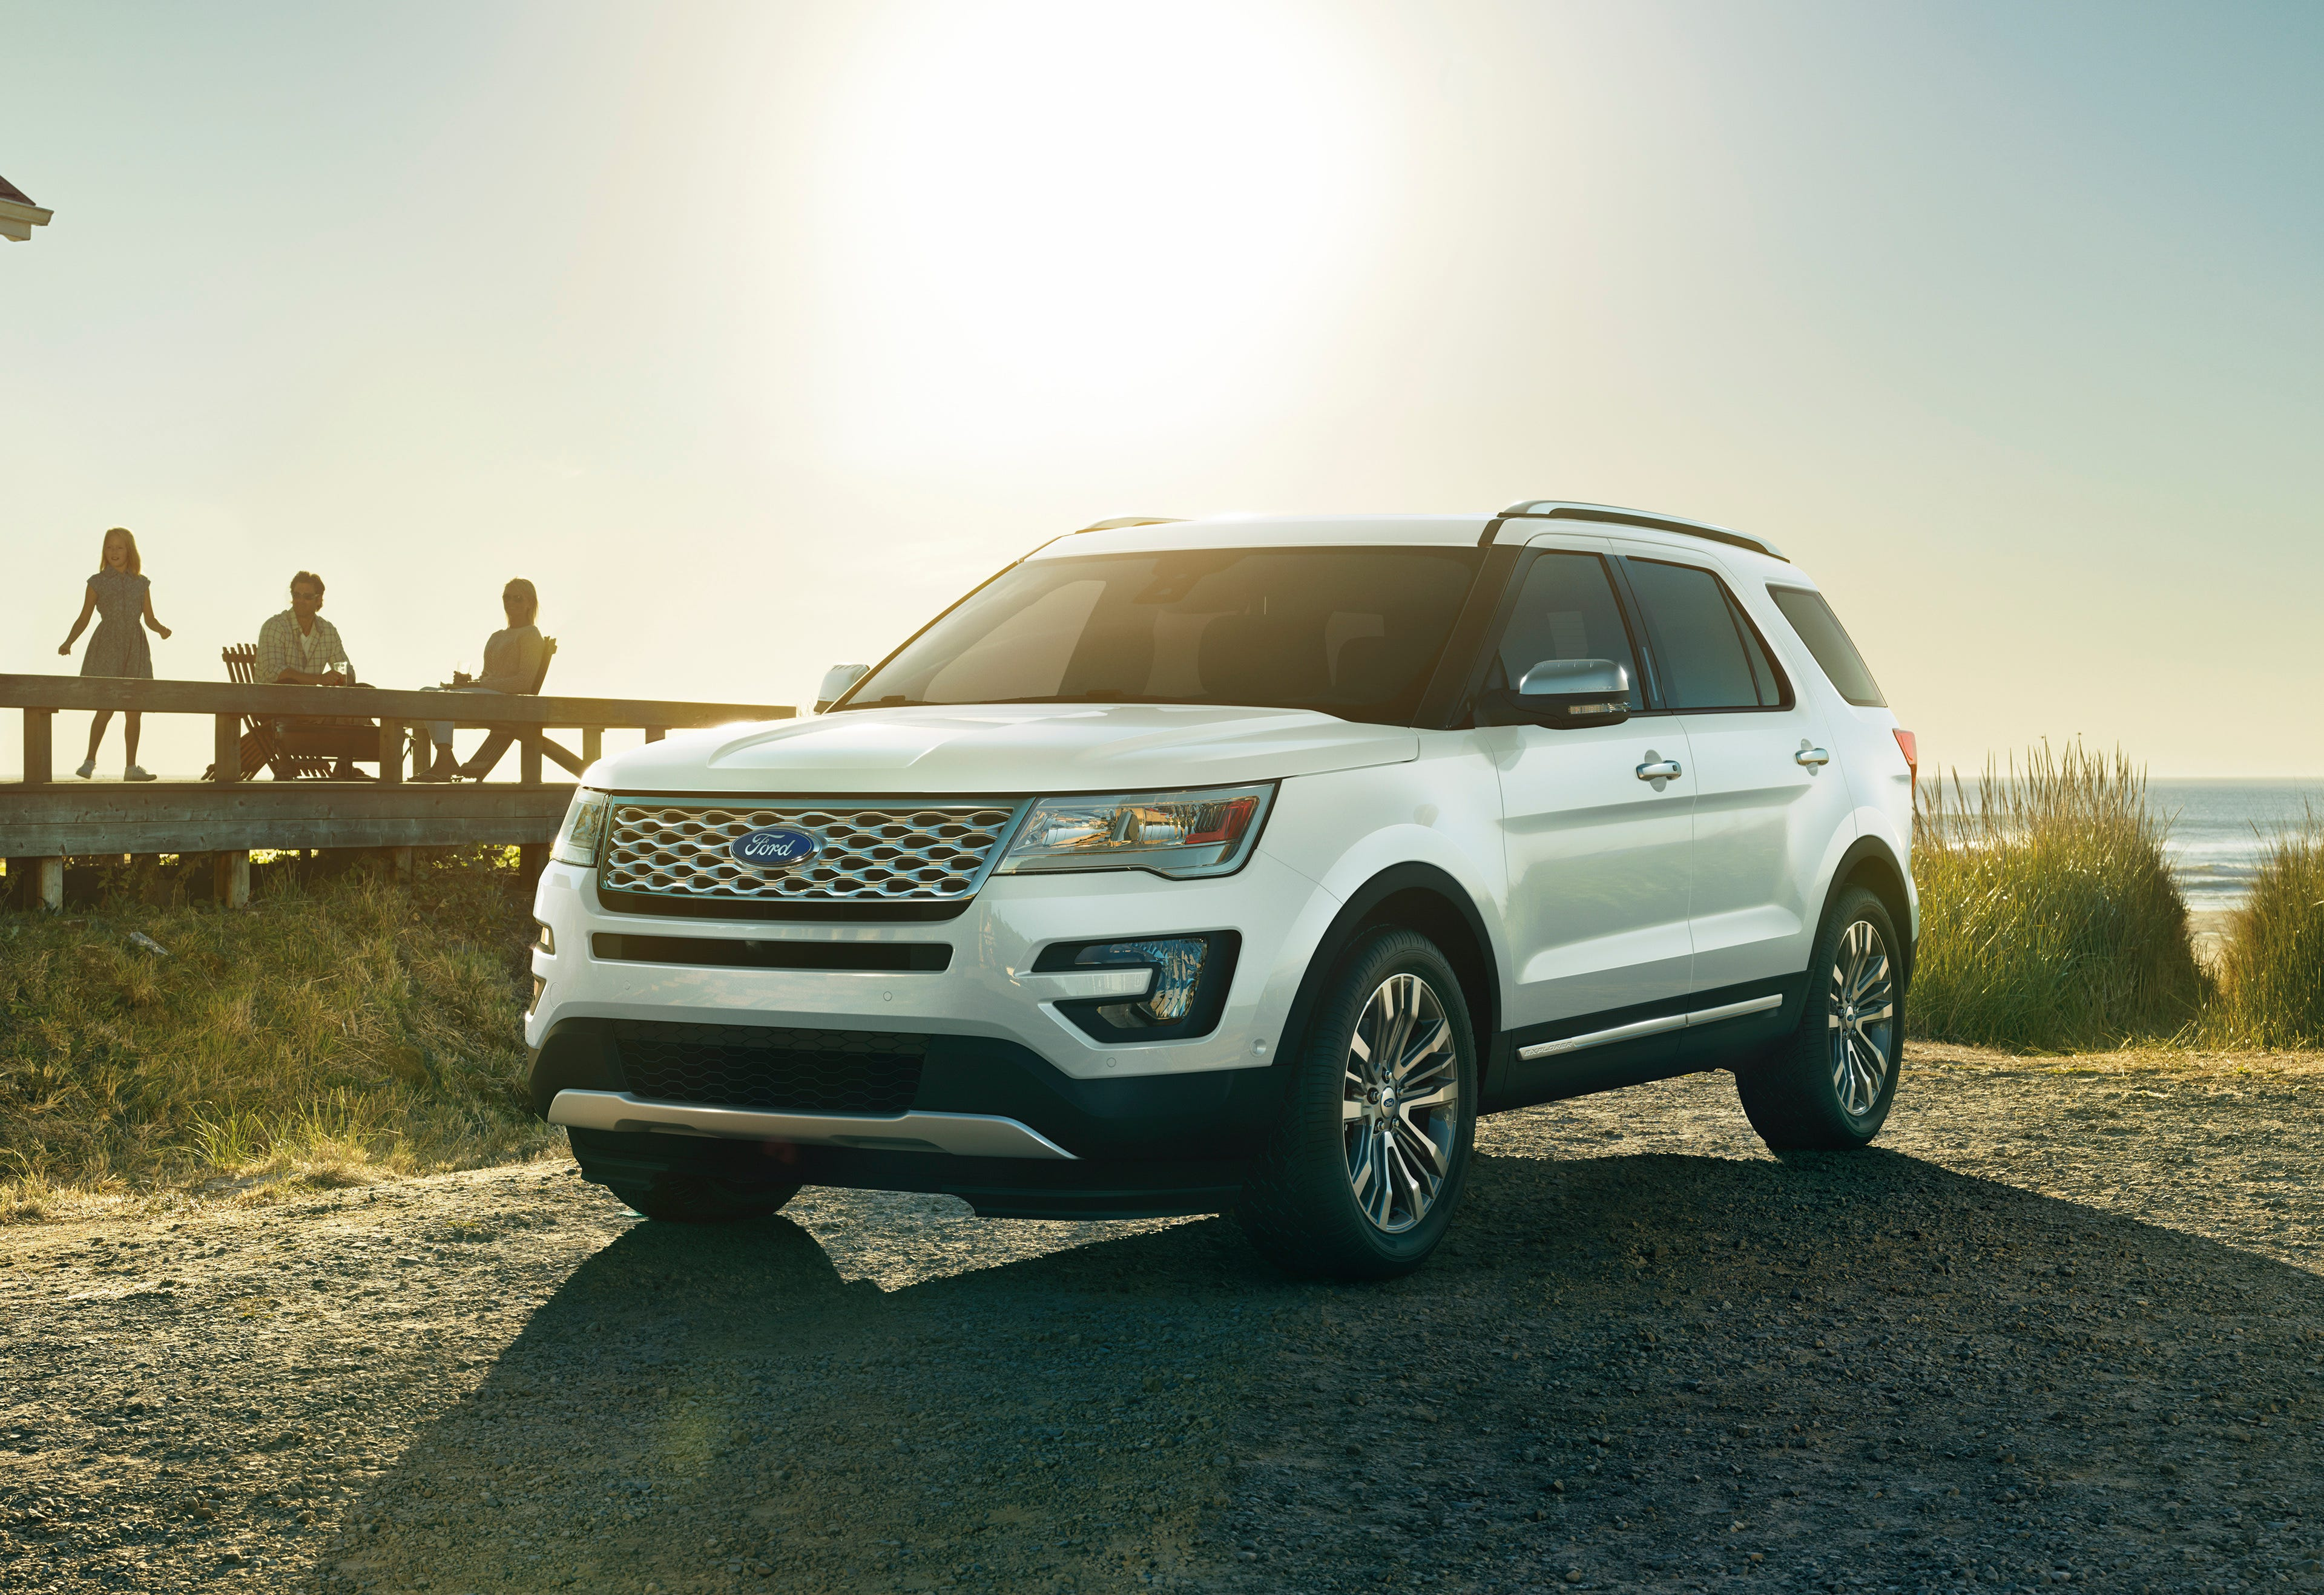 Ford issues safety alert for 375,200 Ford Explorers with defect tied to 13 accidents